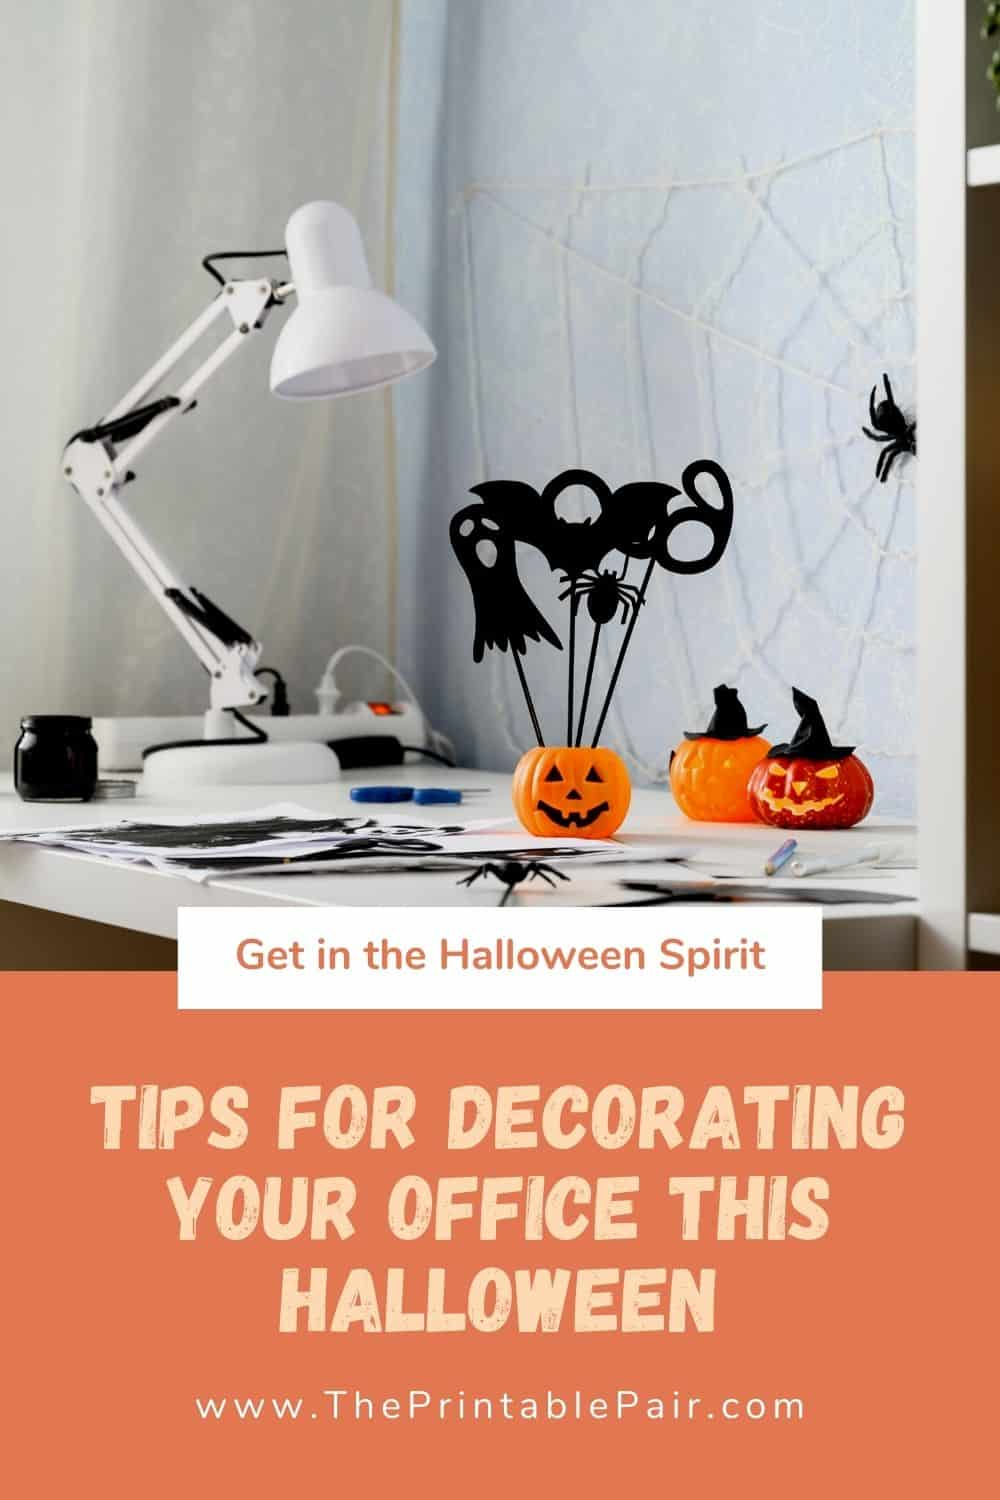 Three Office Decorating Tips to Get into the Spooky Halloween Spirit